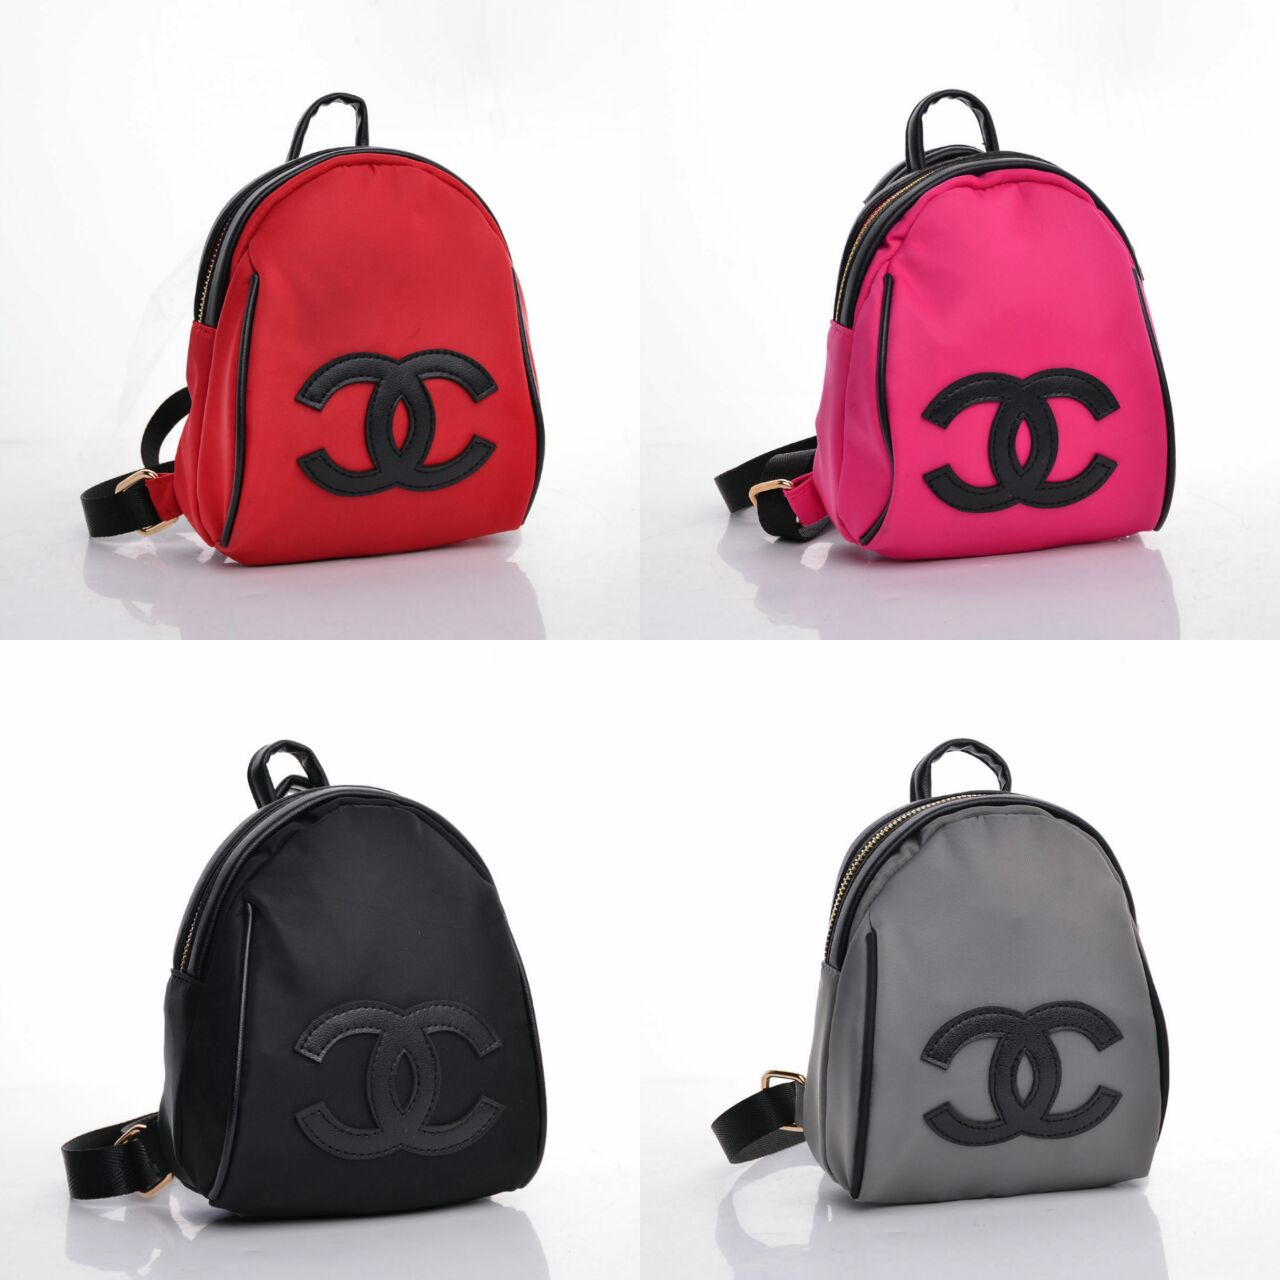 Legendabutik Ransel Chanel Mini Canvas Cc Merah Semi Premium 39677fb003